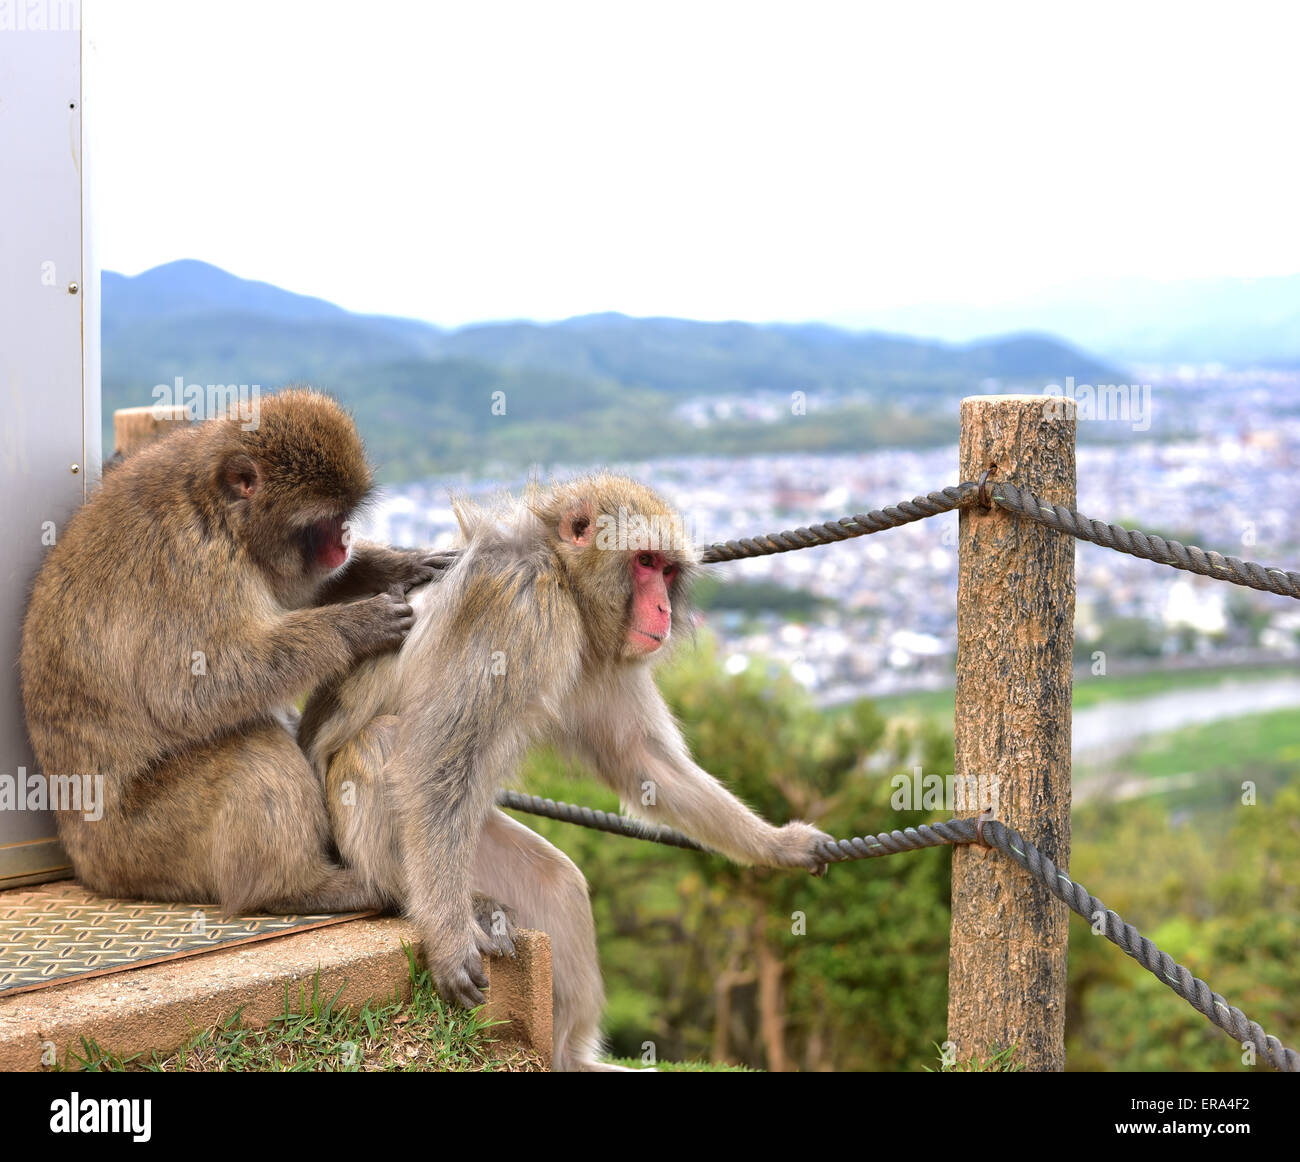 Macaca fuscata delousing Stock Photo